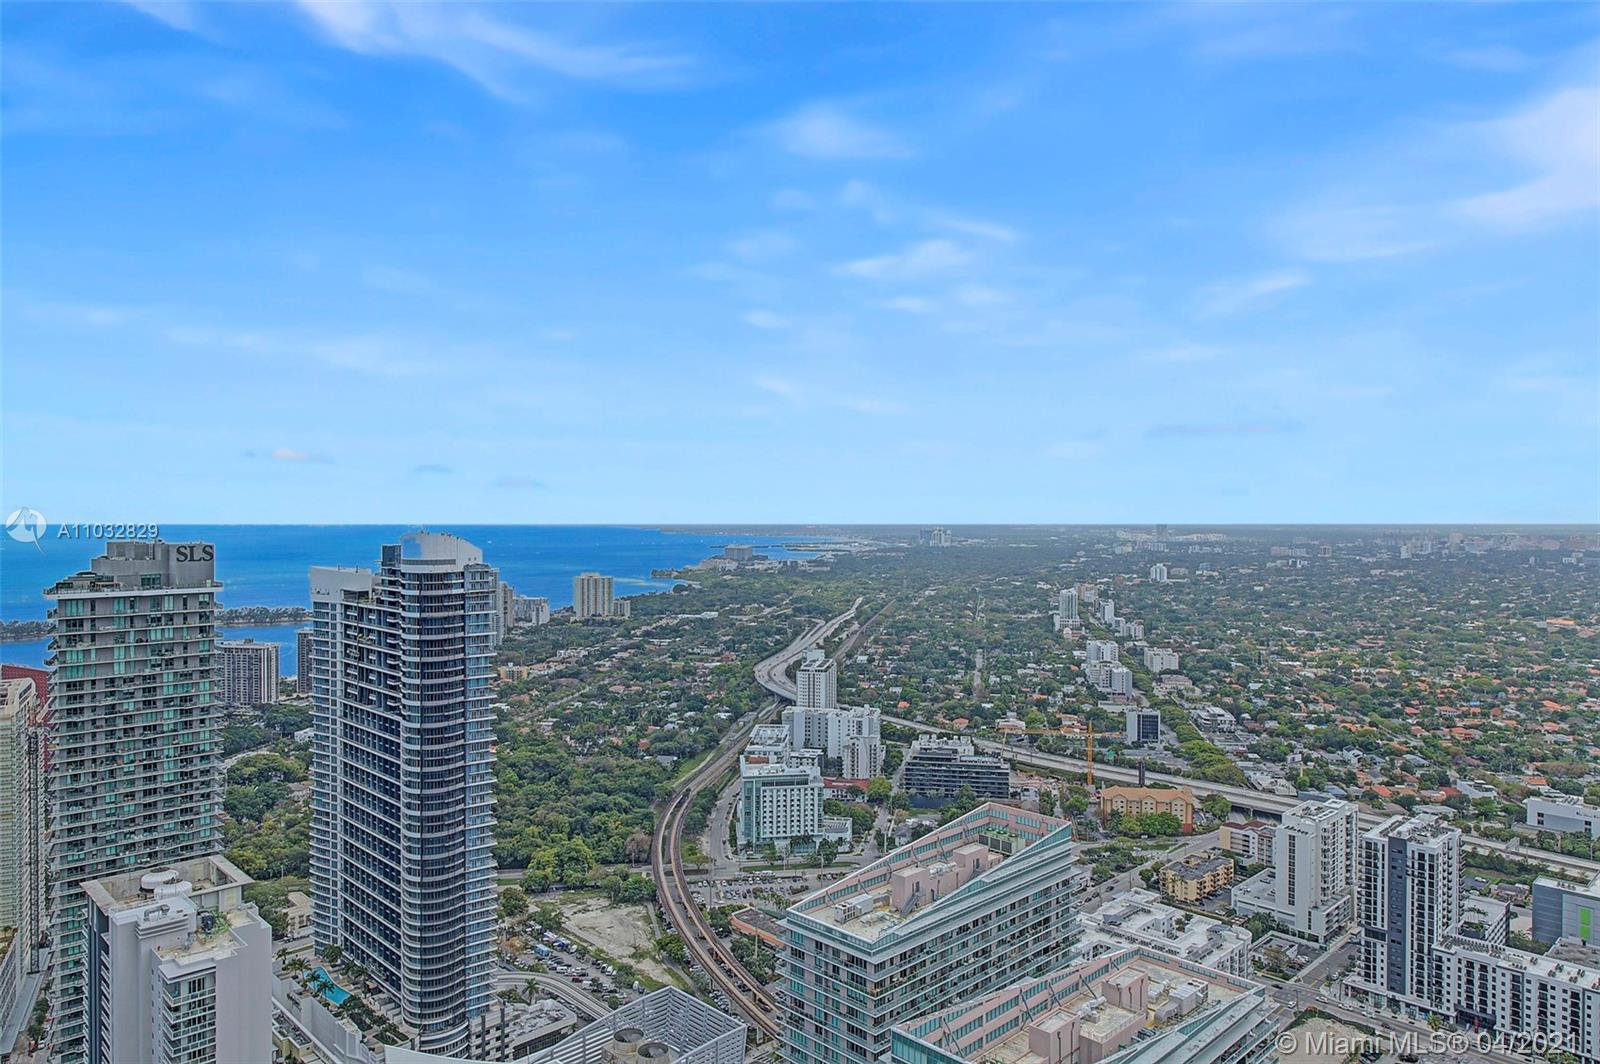 Experience life at the top at this exclusive upper penthouse at Brickell Flatiron featuring soaring